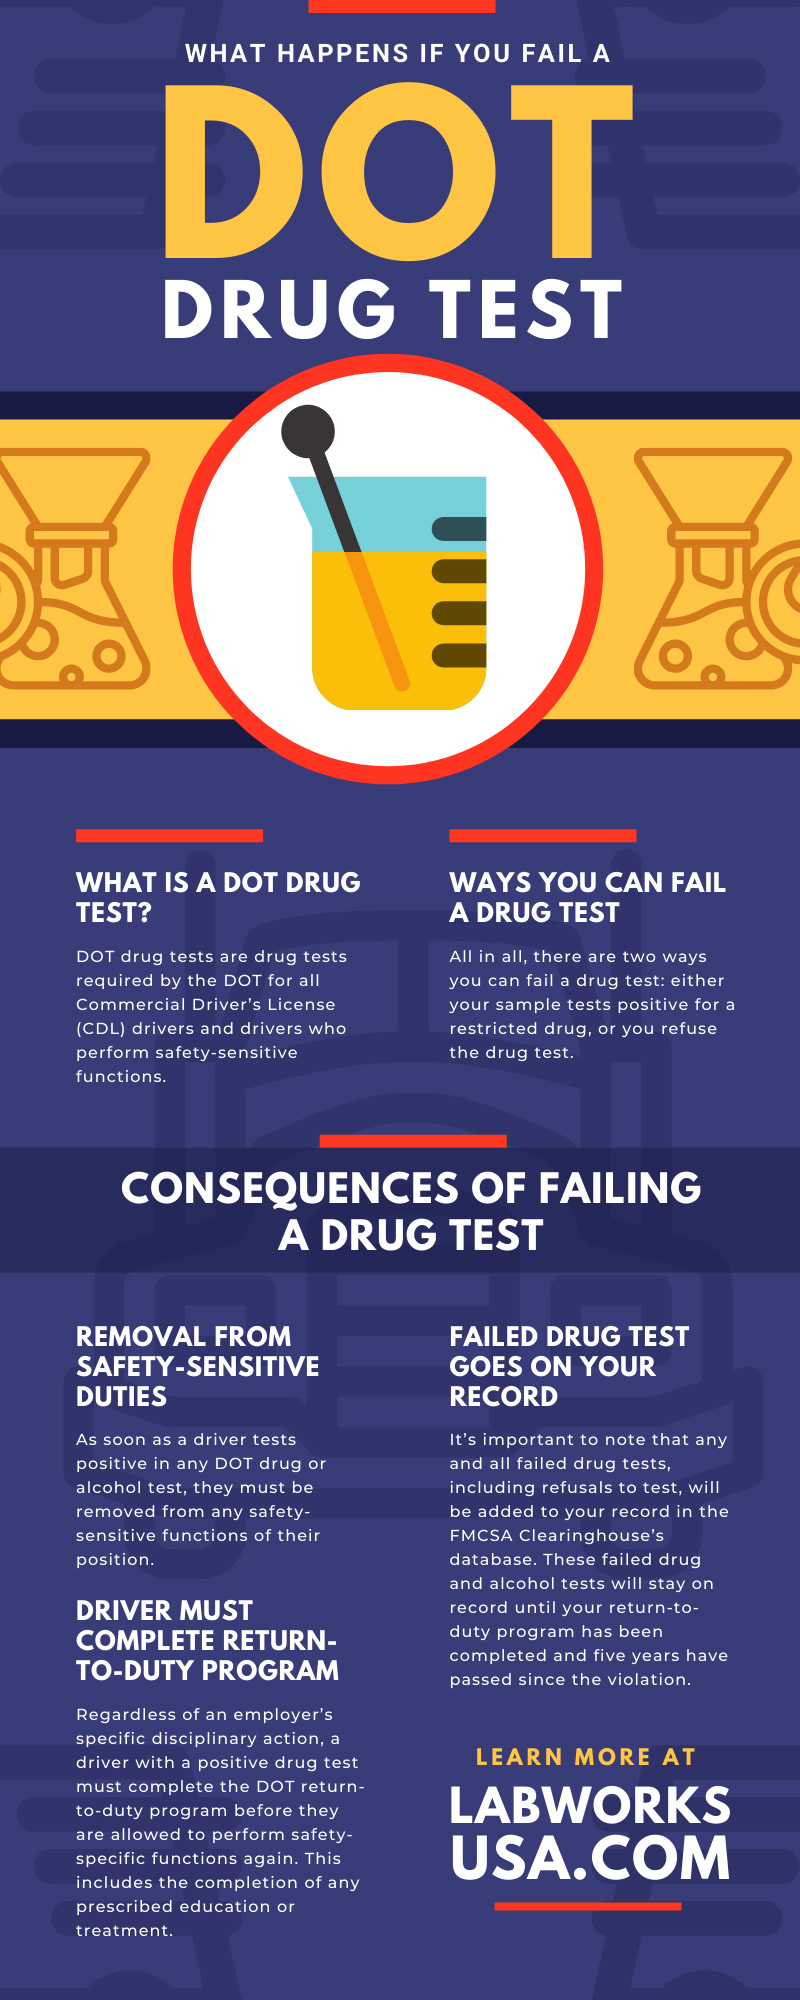 What Happens if You Fail a DOT Drug Test